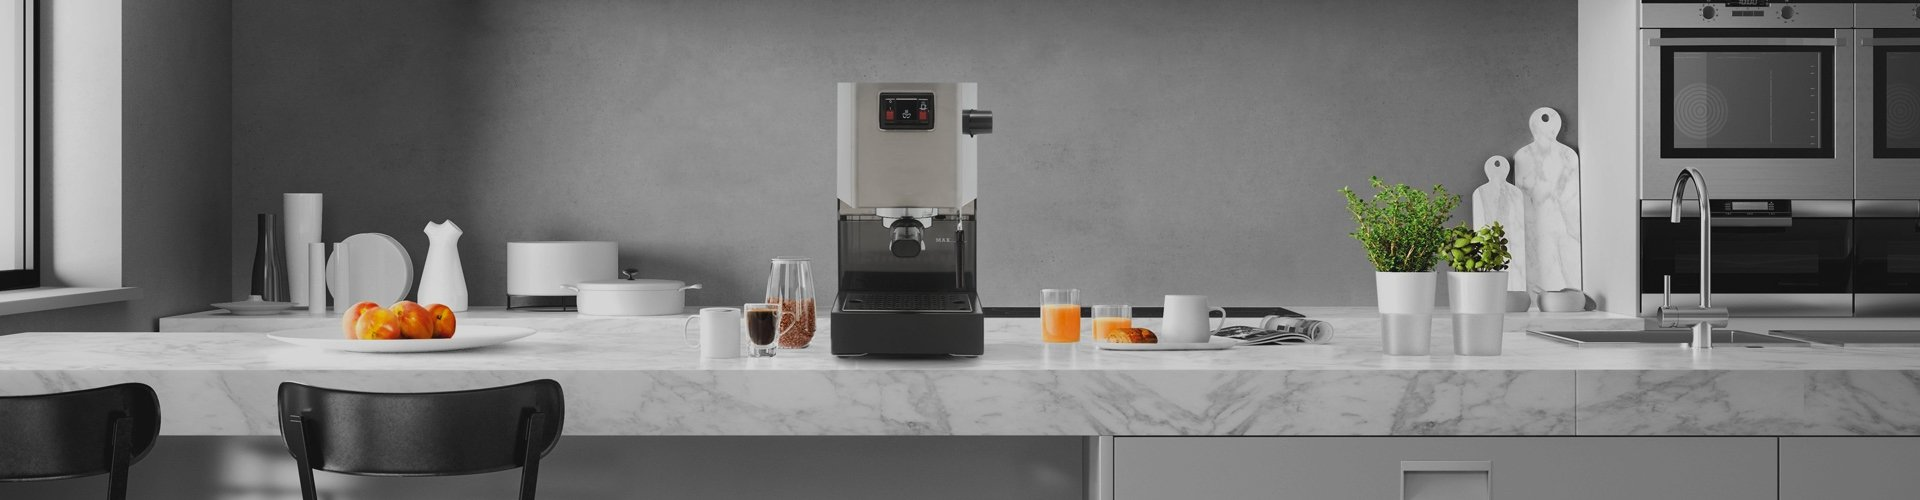 Best Espresso Machines under $200